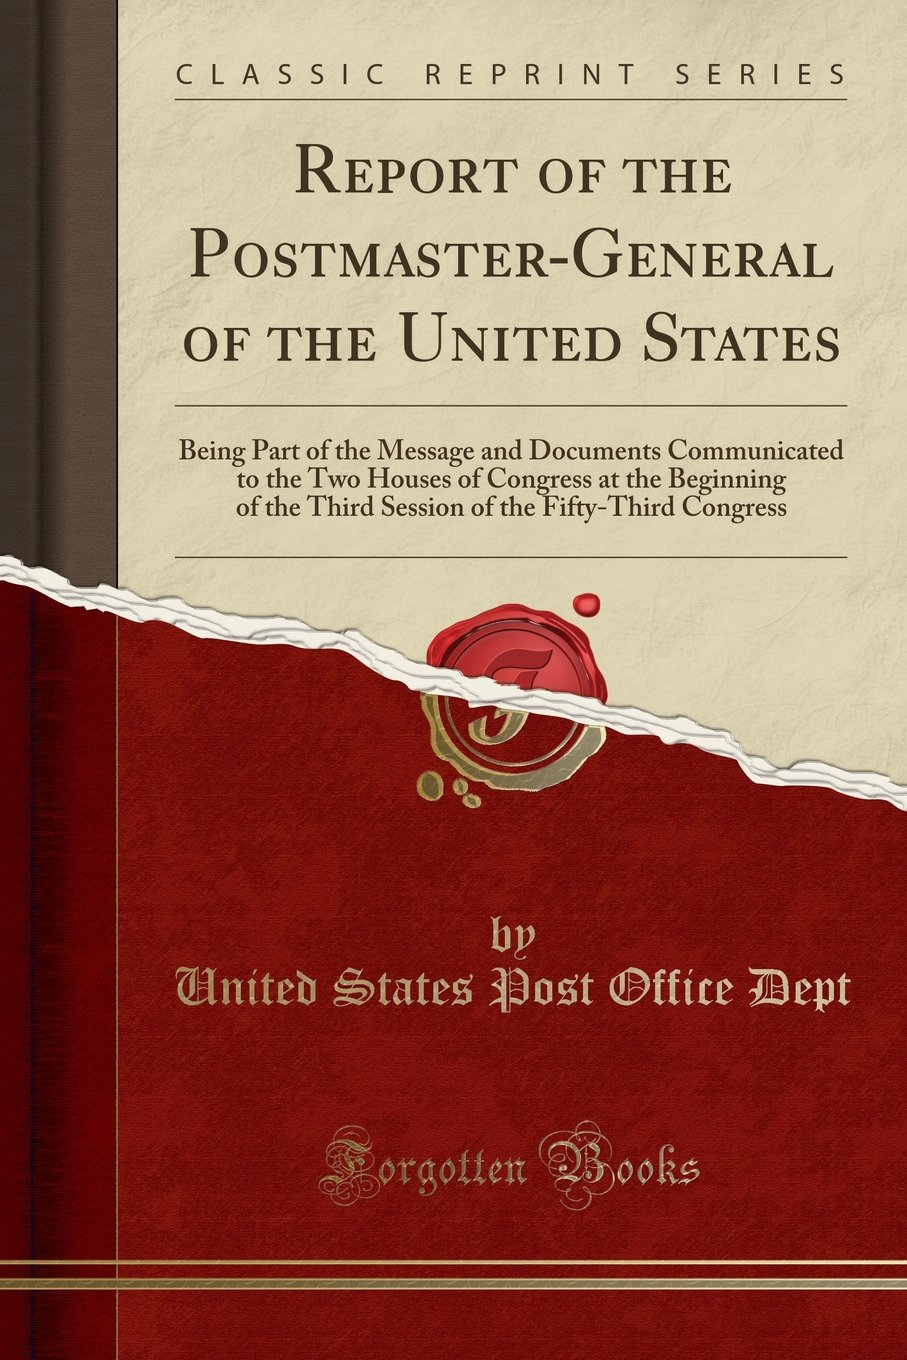 Download Report of the Postmaster-General of the United States: Being Part of the Message and Documents Communicated to the Two Houses of Congress at the ... of the Fifty-Third Congress (Classic Reprint) PDF